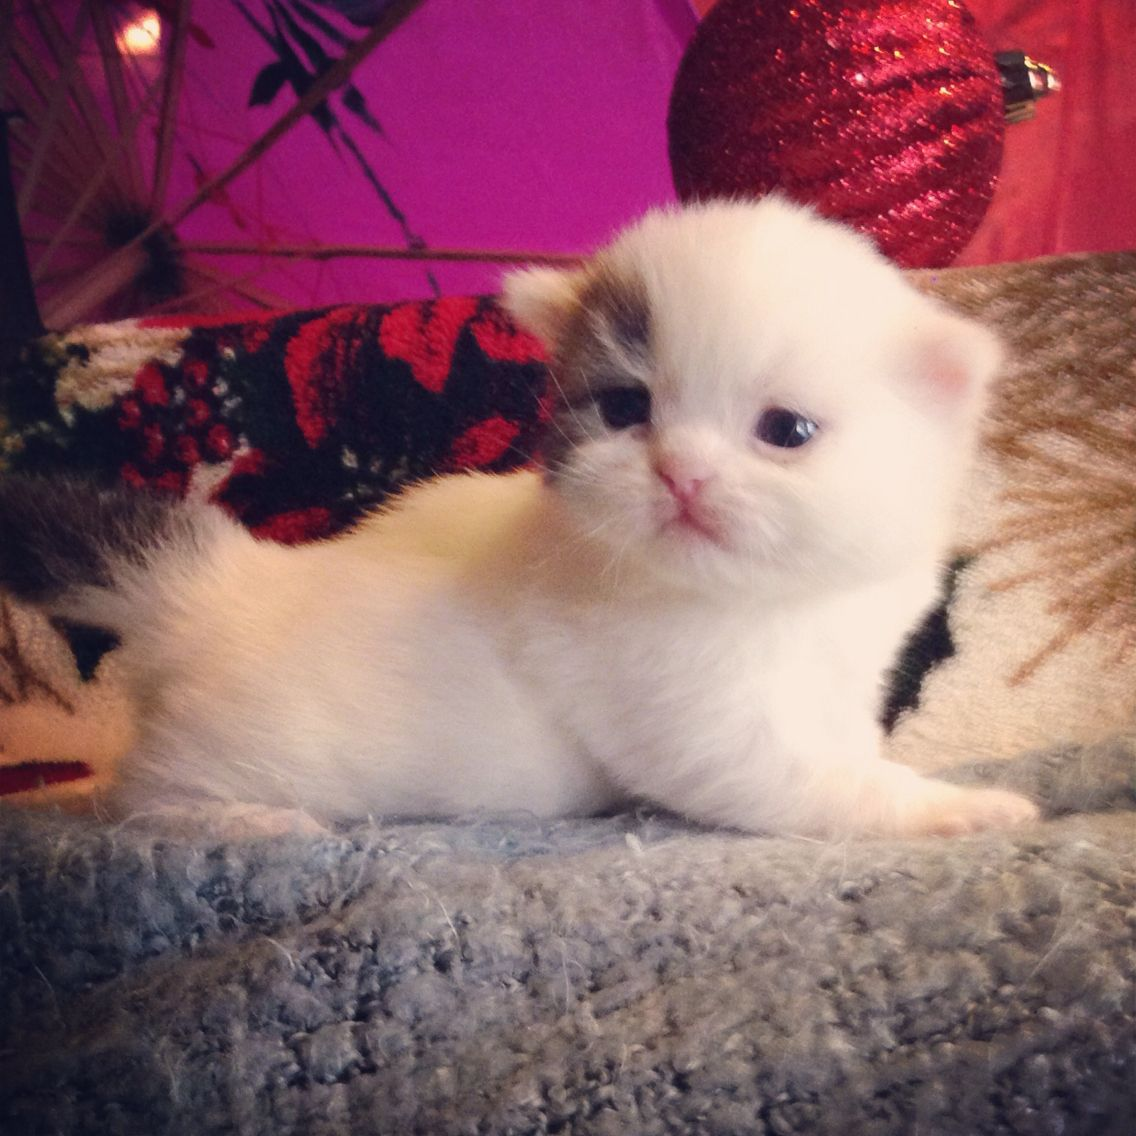 Pin by April Leshaun on ♡Adorable♡ Kittens cutest, Cat